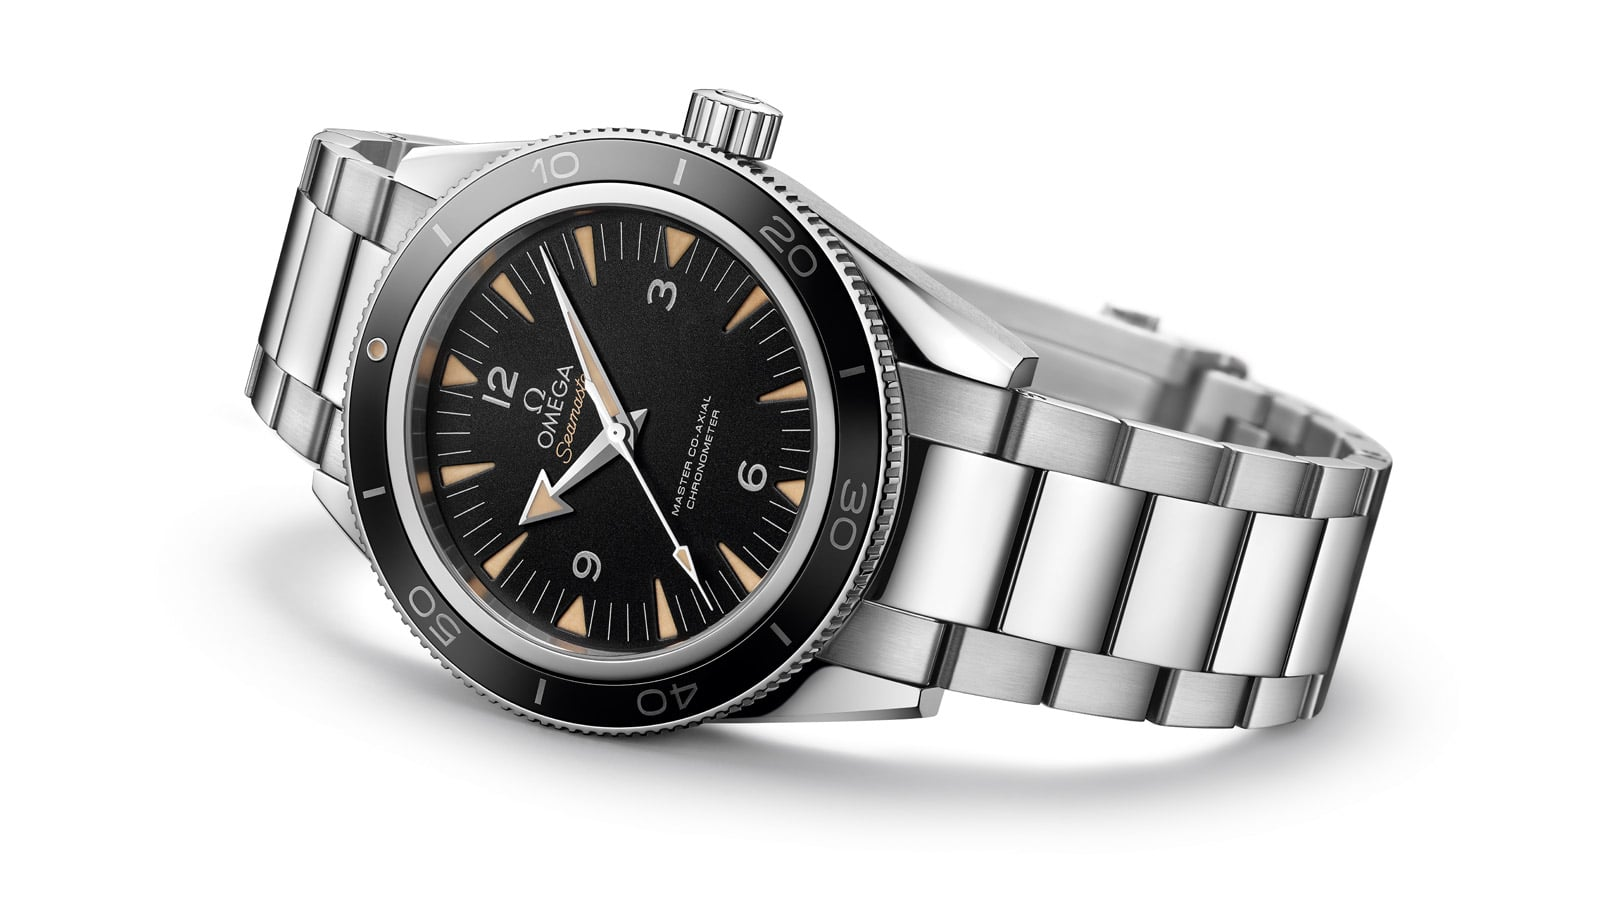 THE SEAMASTER 300 MASTER CO-AXIAL